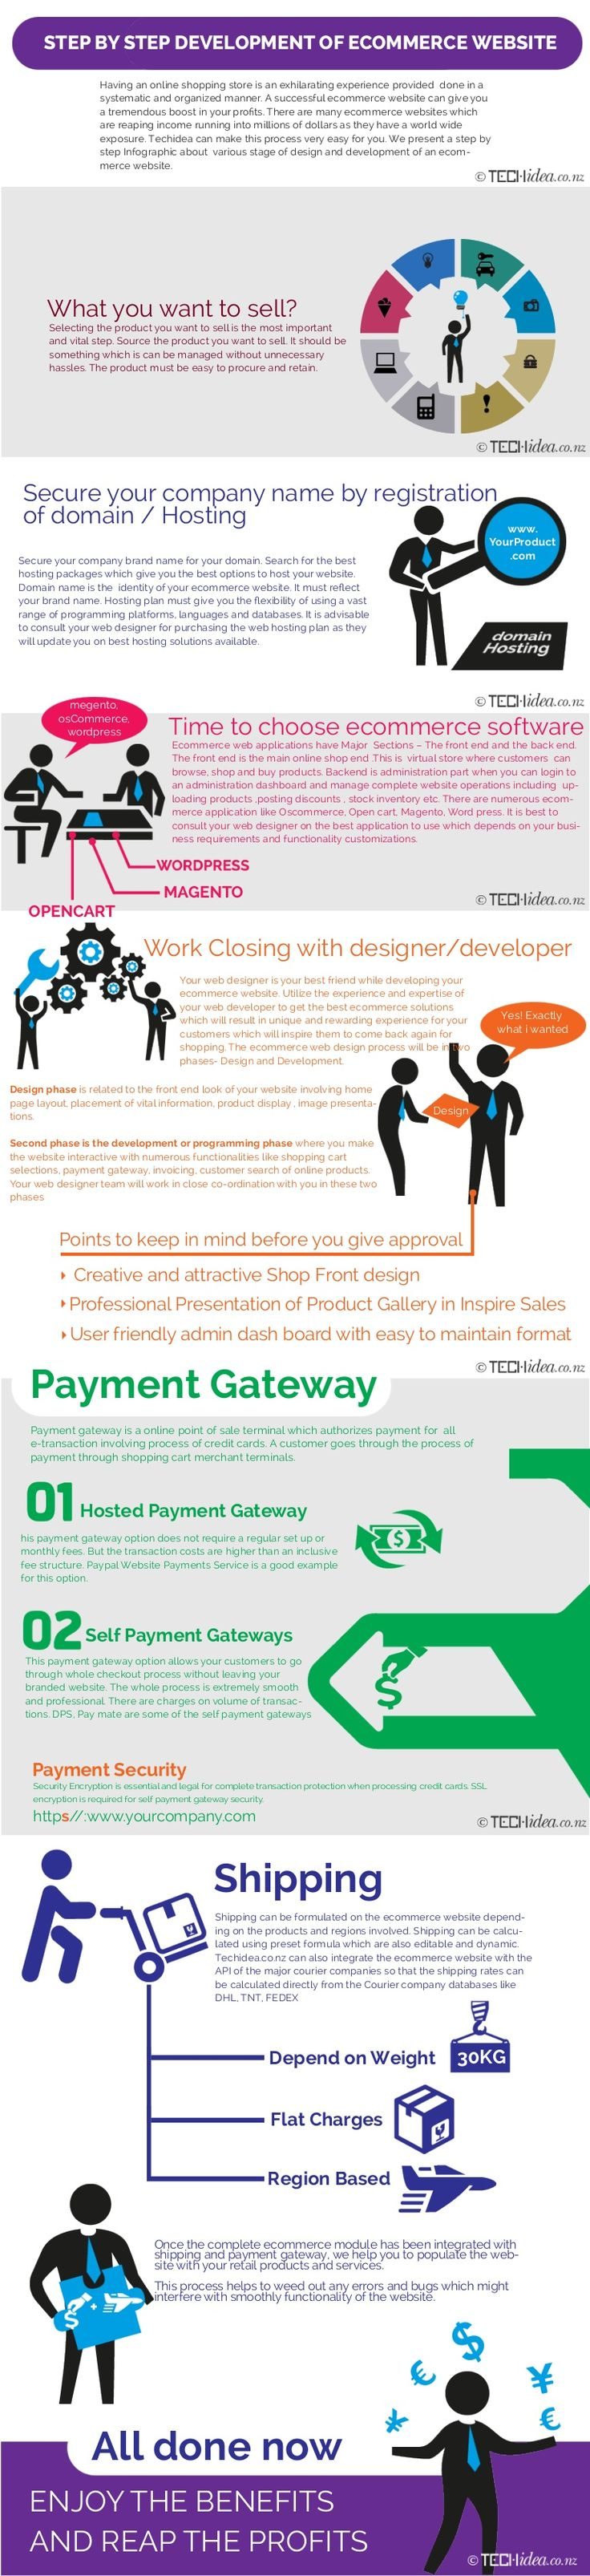 infographics-for-e-commerce-website by Alysha Ava via Slideshare